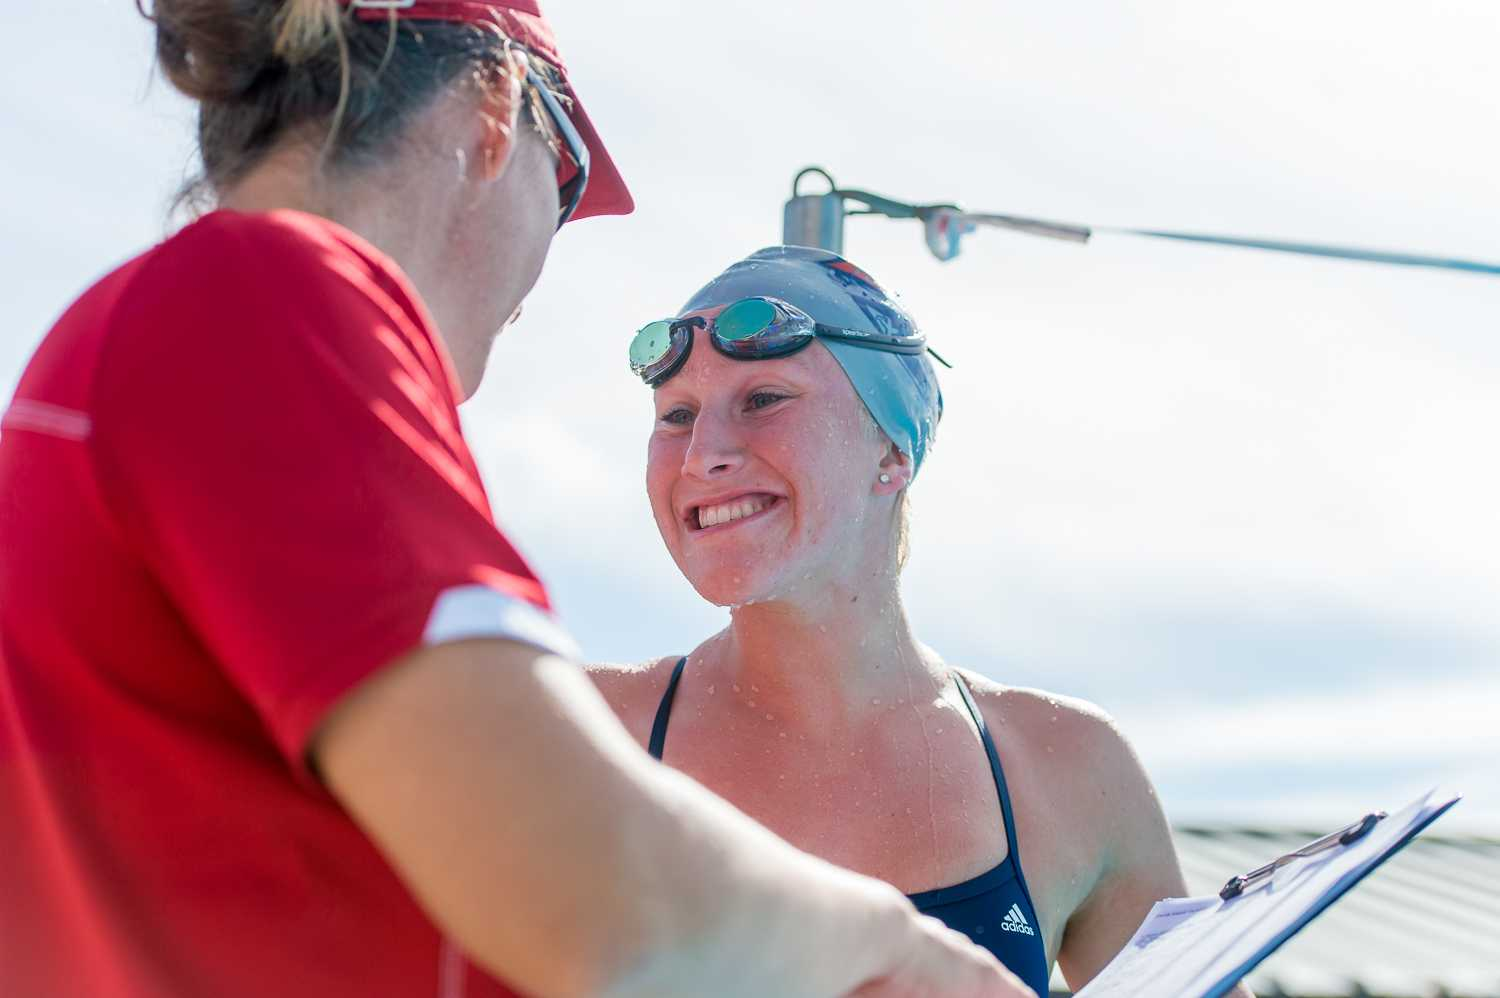 FAU's Abbey King celebrates with her coach after winning the women's 1000 yard freestyle event with a time of 10:27.01.